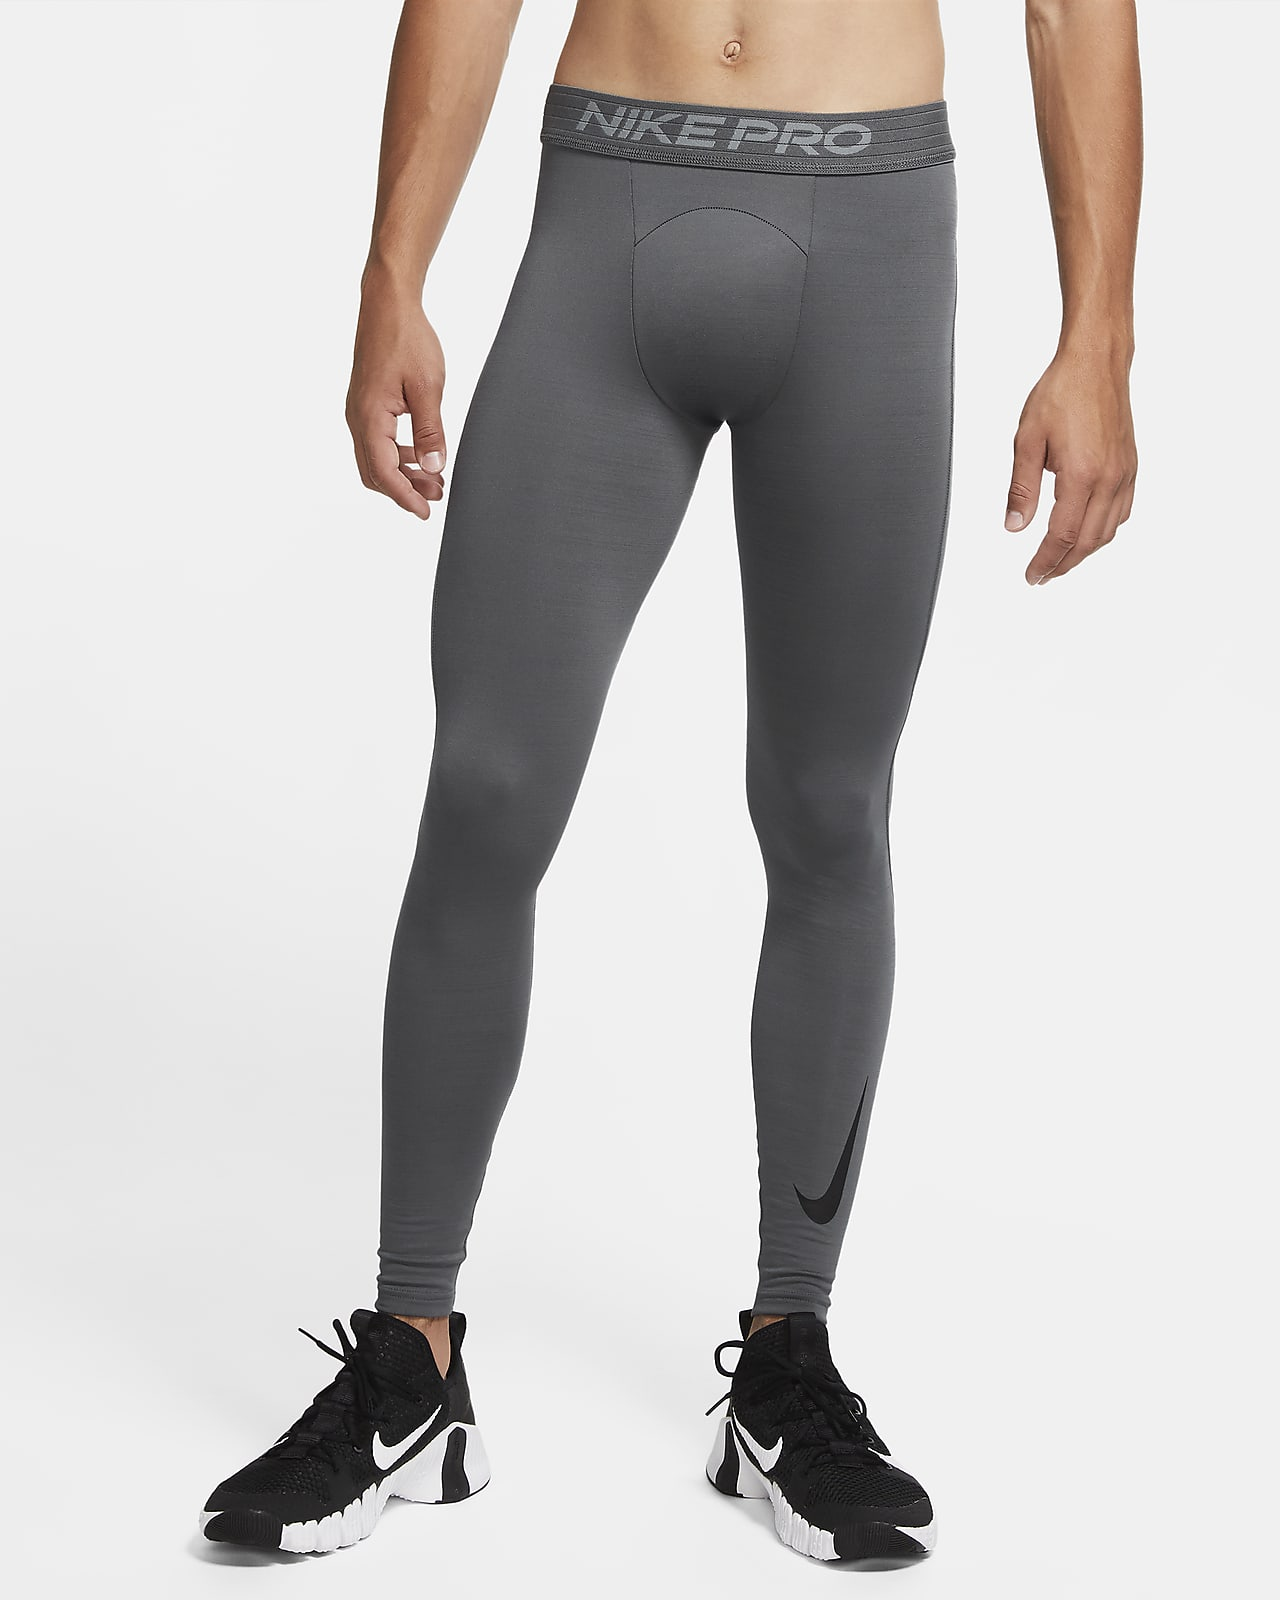 Nike Pro Warm Malles - Home